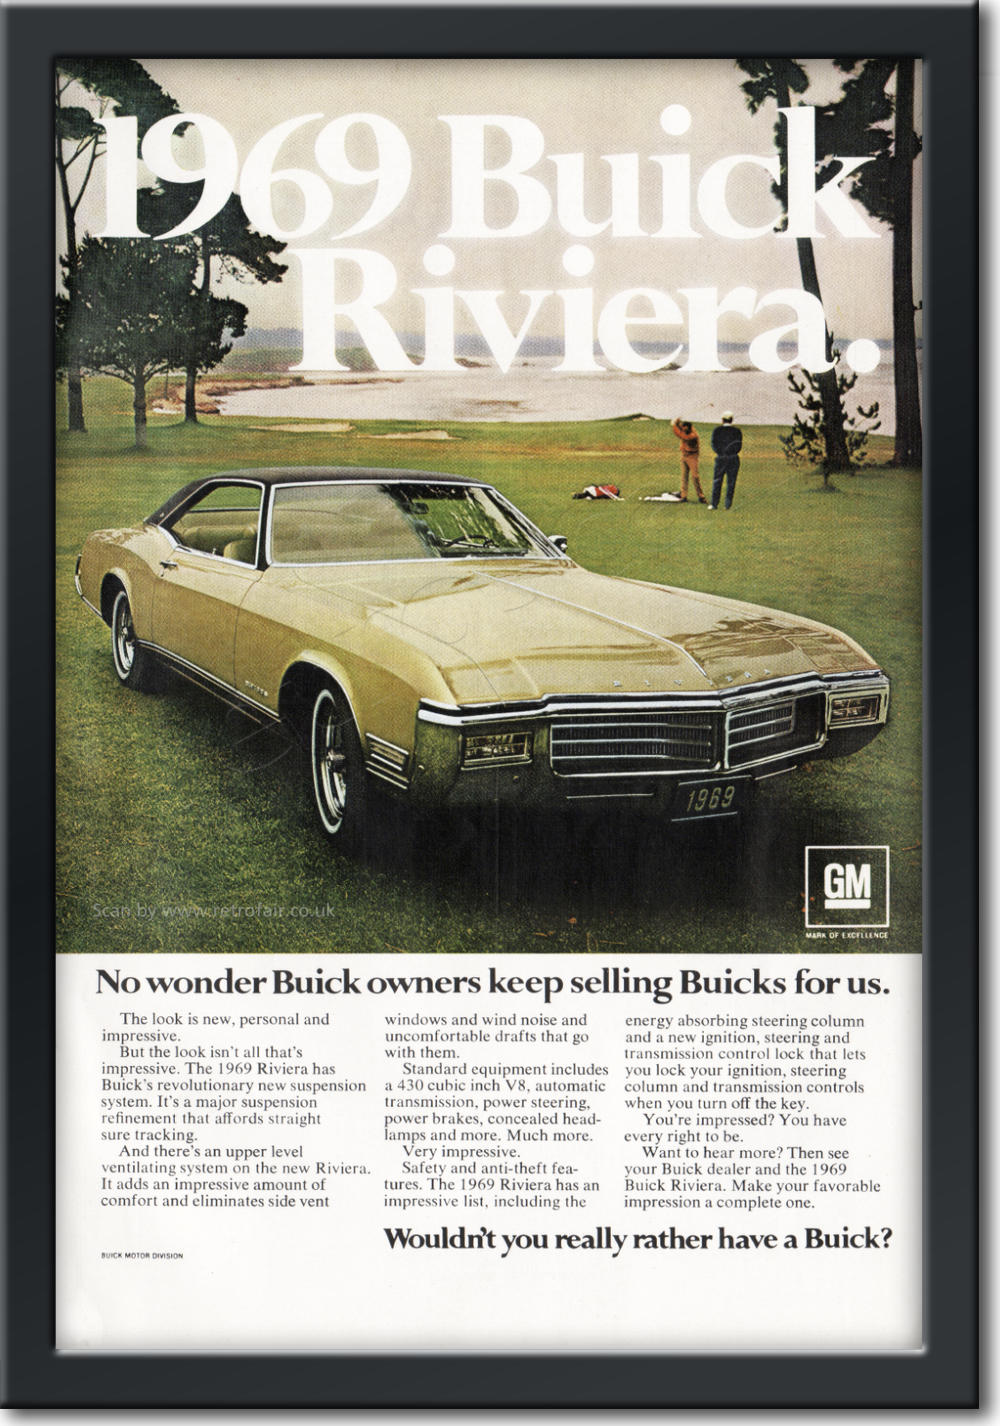 1969 Buick - framed preview vintage ad